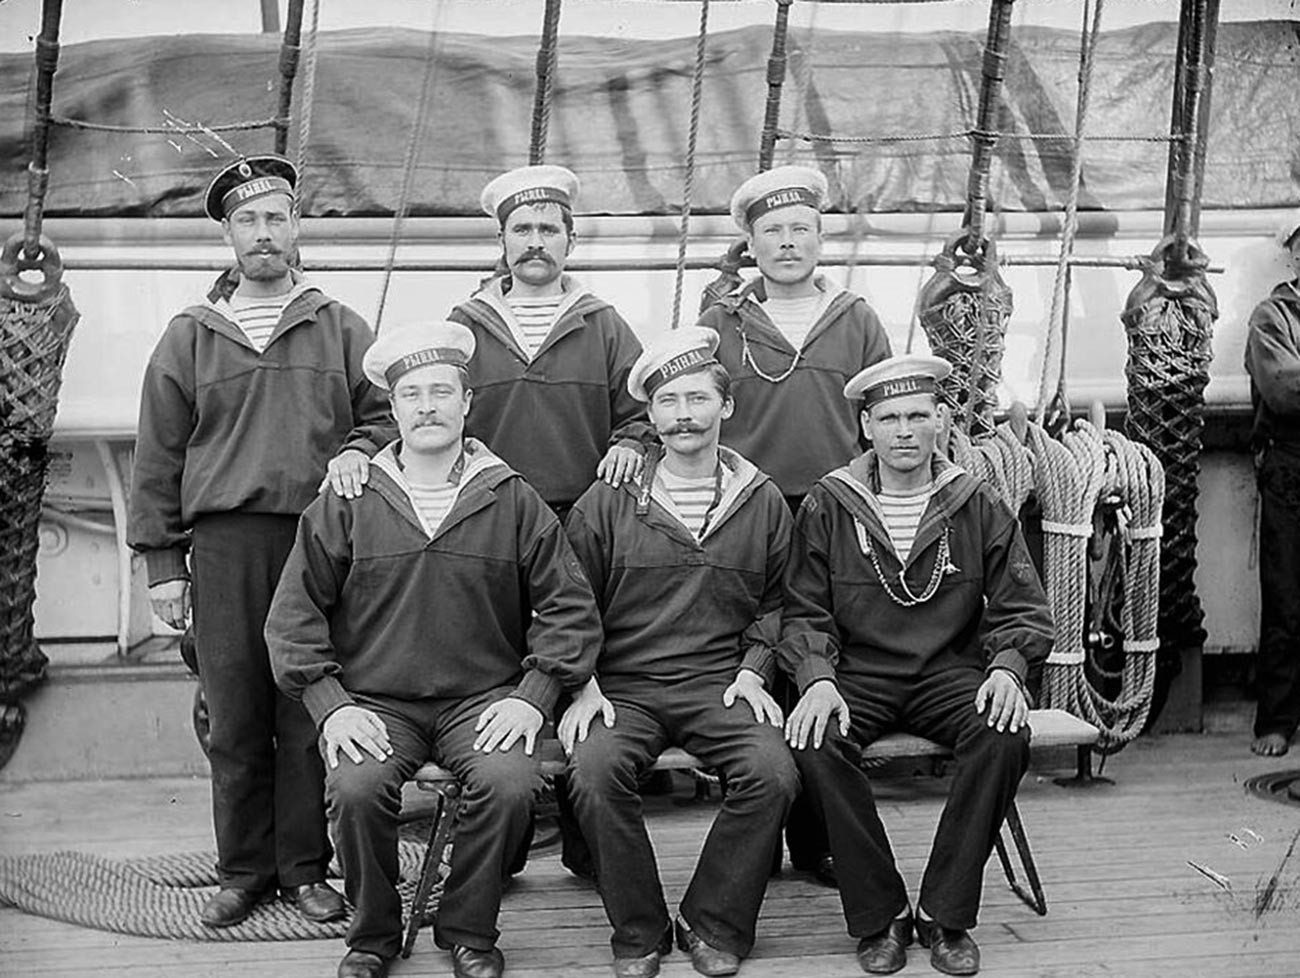 Russian sailors of the 19th century in an old-style tel'nyashka